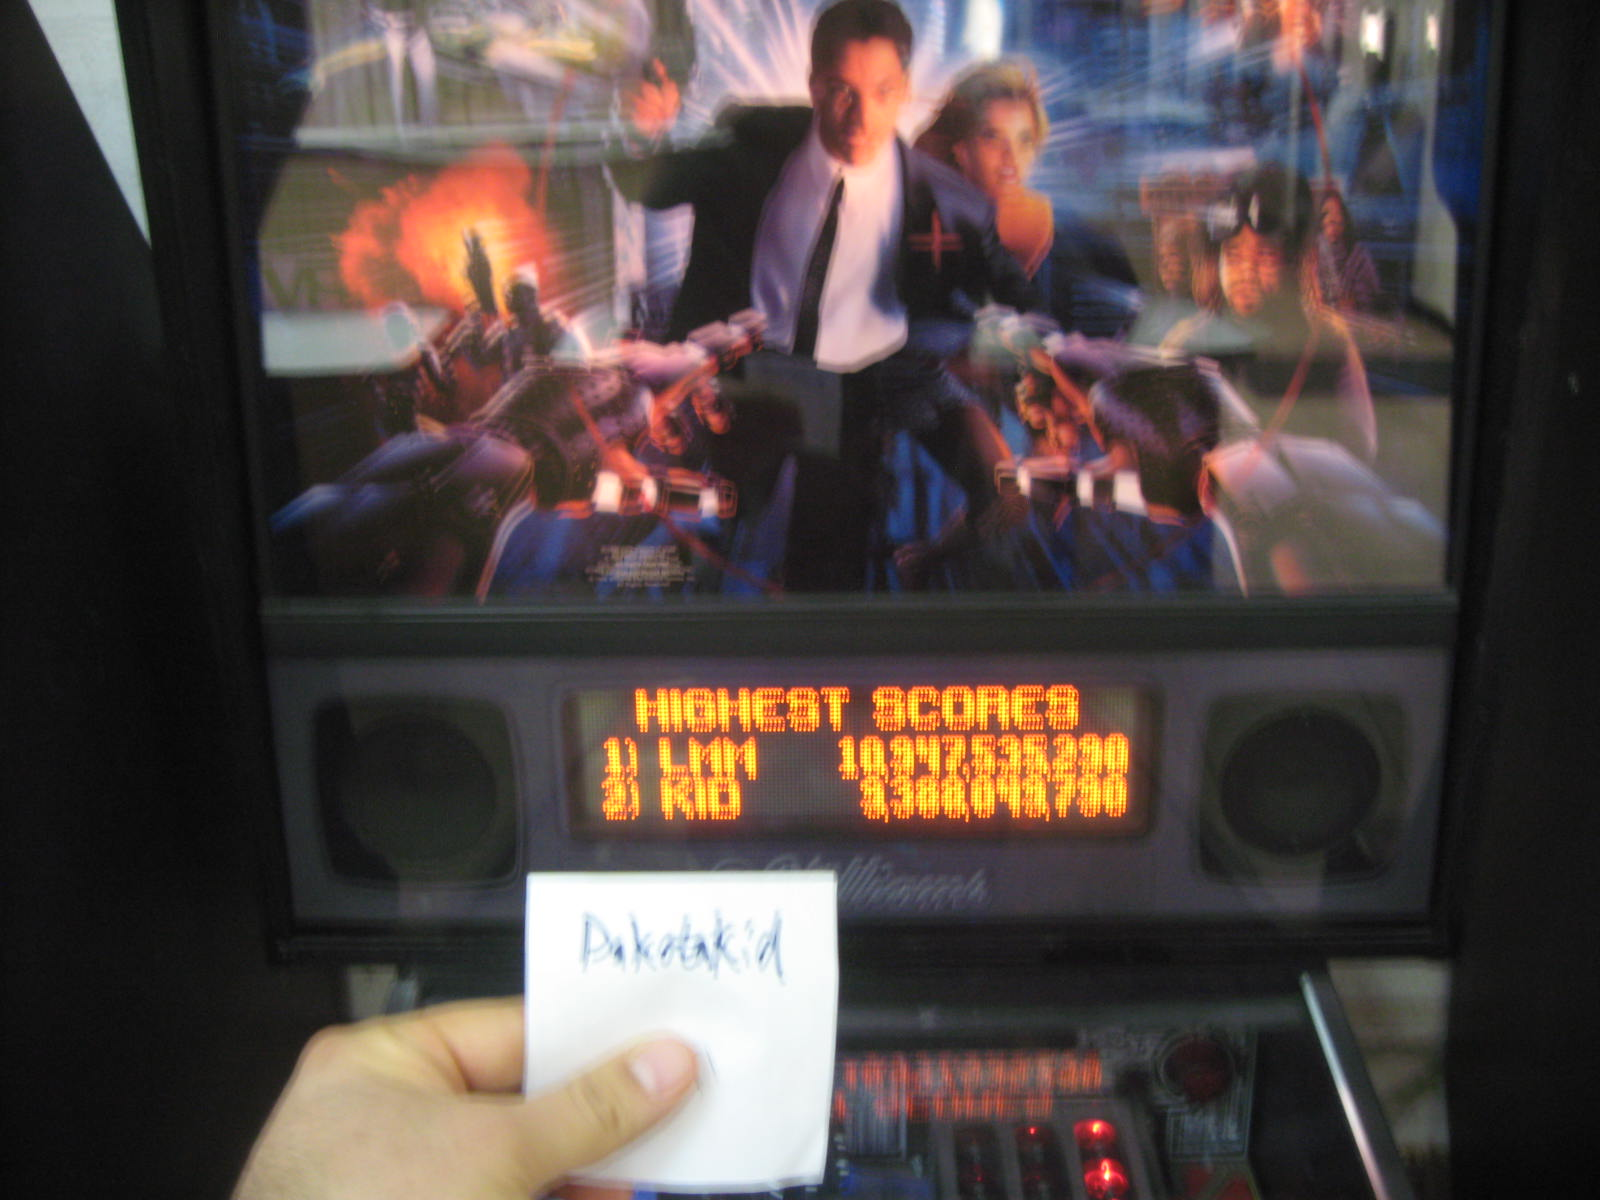 DakotaKid: Johnny Mnemonic (Pinball: 3 Balls) 9,388,049,790 points on 2015-01-09 21:48:03